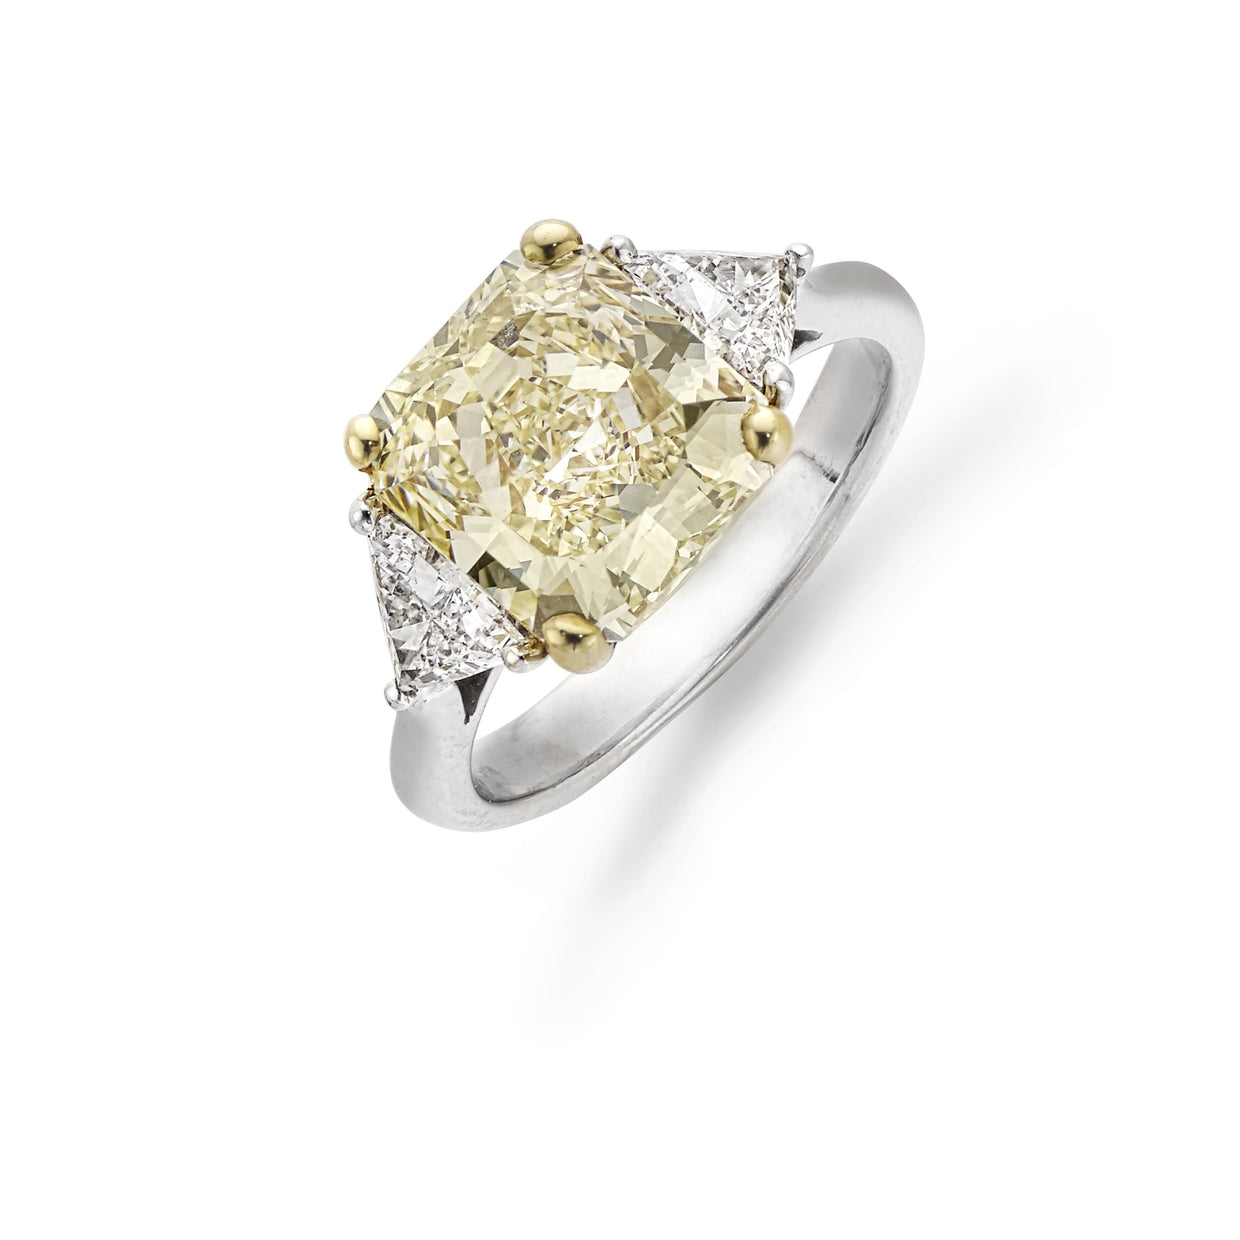 Yellow 4.17cts Diamond Three Stone Ring in 18ct White Gold-Hamilton & Inches